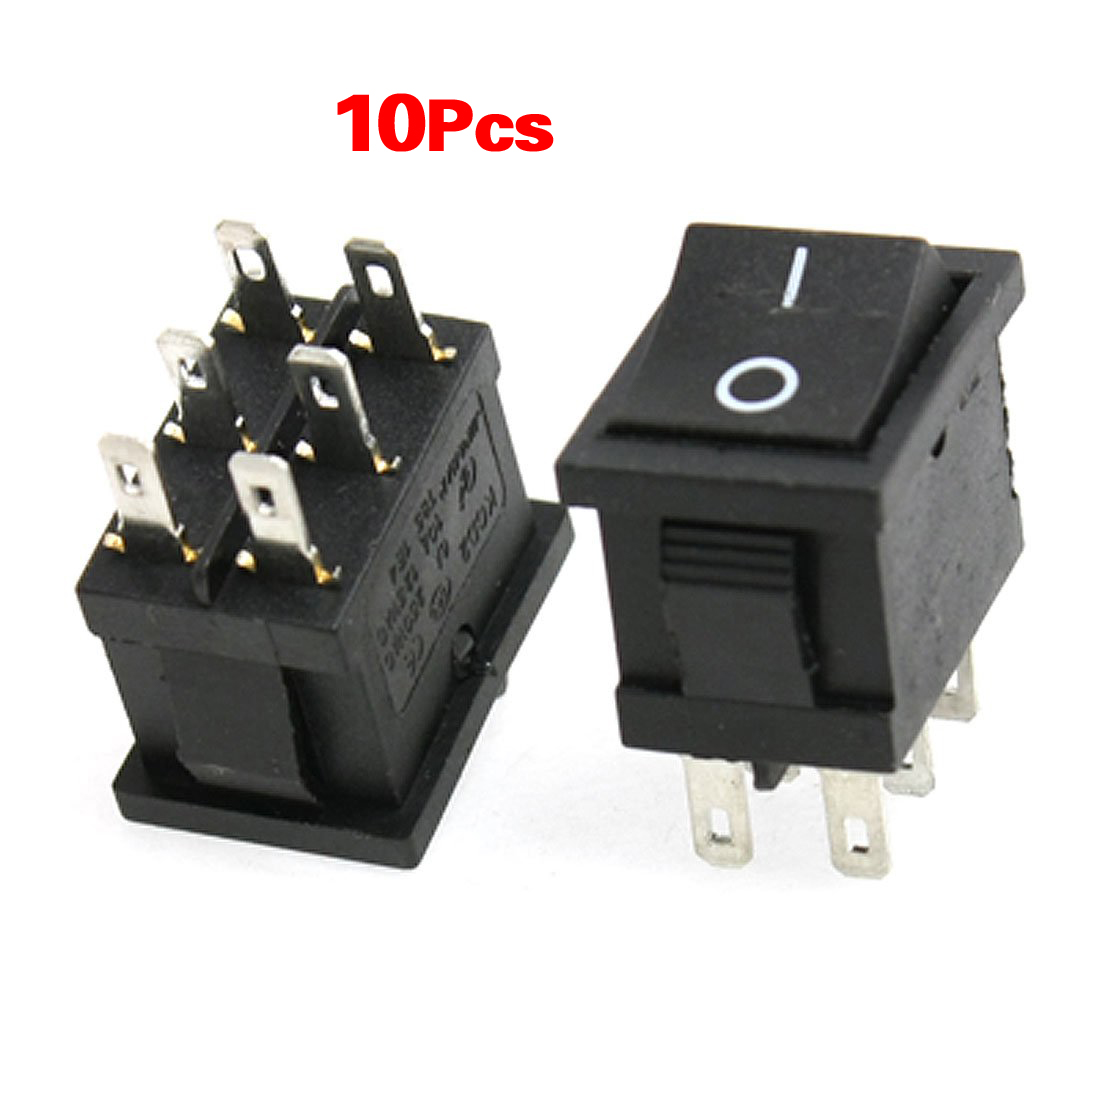 Promotion! 10pcs AC 6A/250V 10A/125V 6 Pin DPDT ON/ON 2 Position Snap In Boat Rocker Switch mylb 10pcsx ac 3a 250v 6a 125v on off i o spst 2 pin snap in round boat rocker switch